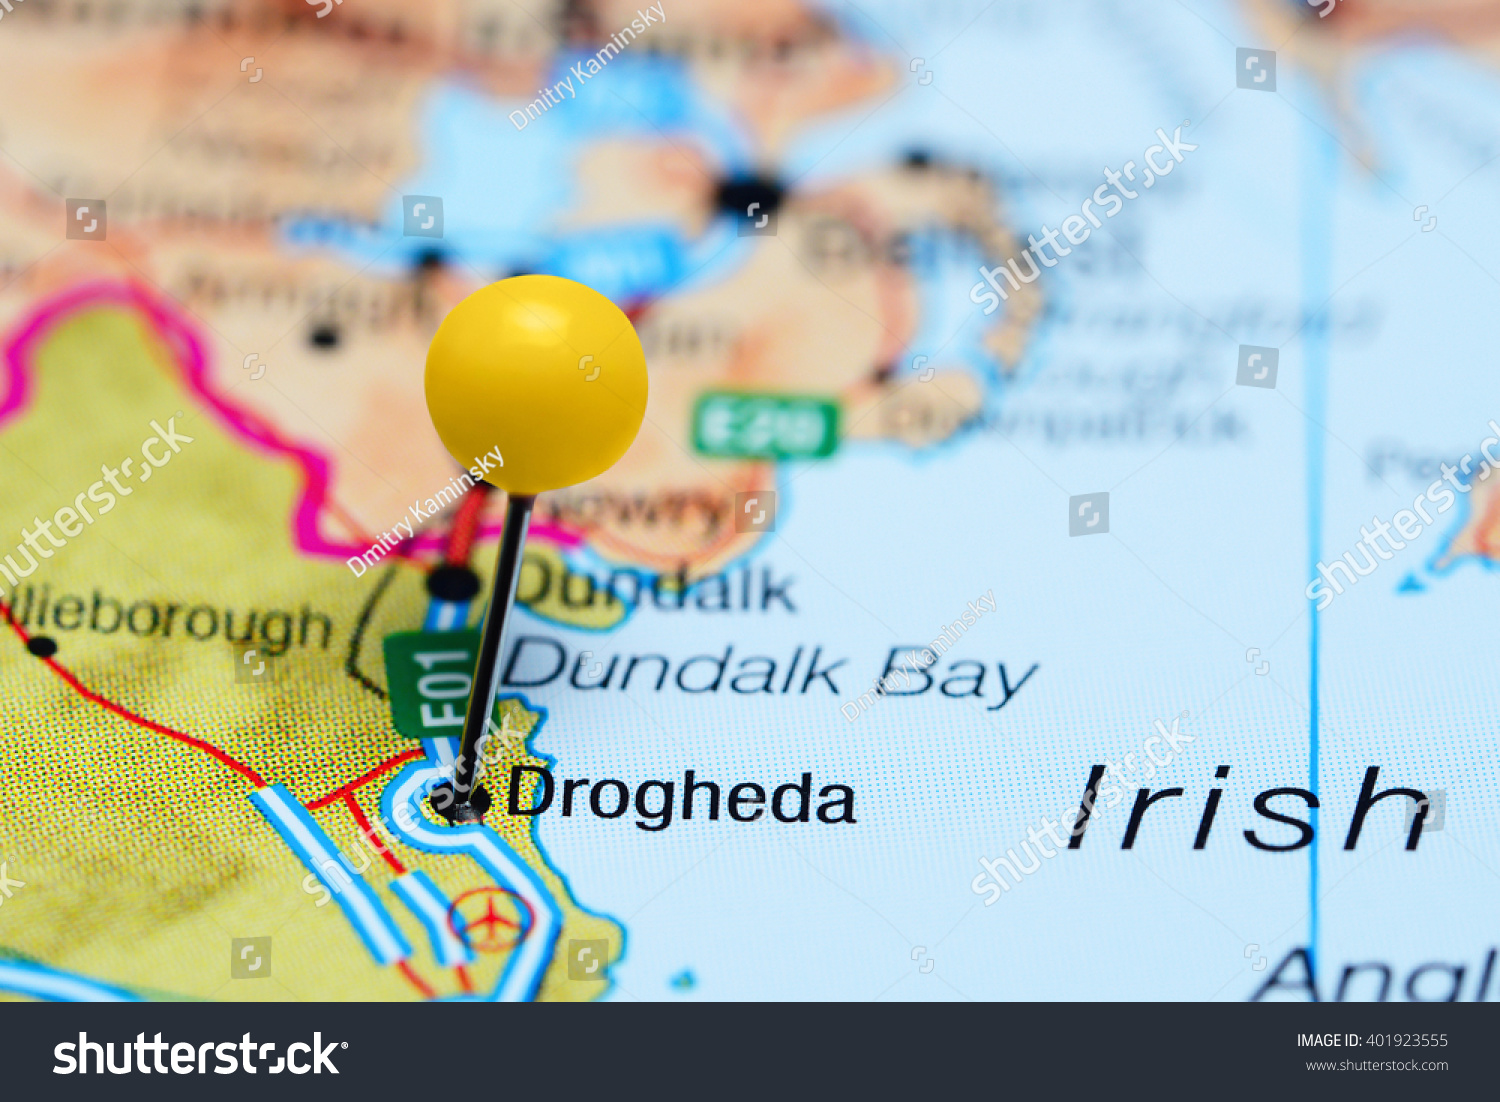 Drogheda Pinned On Map Ireland Stock Photo 401923555 Shutterstock